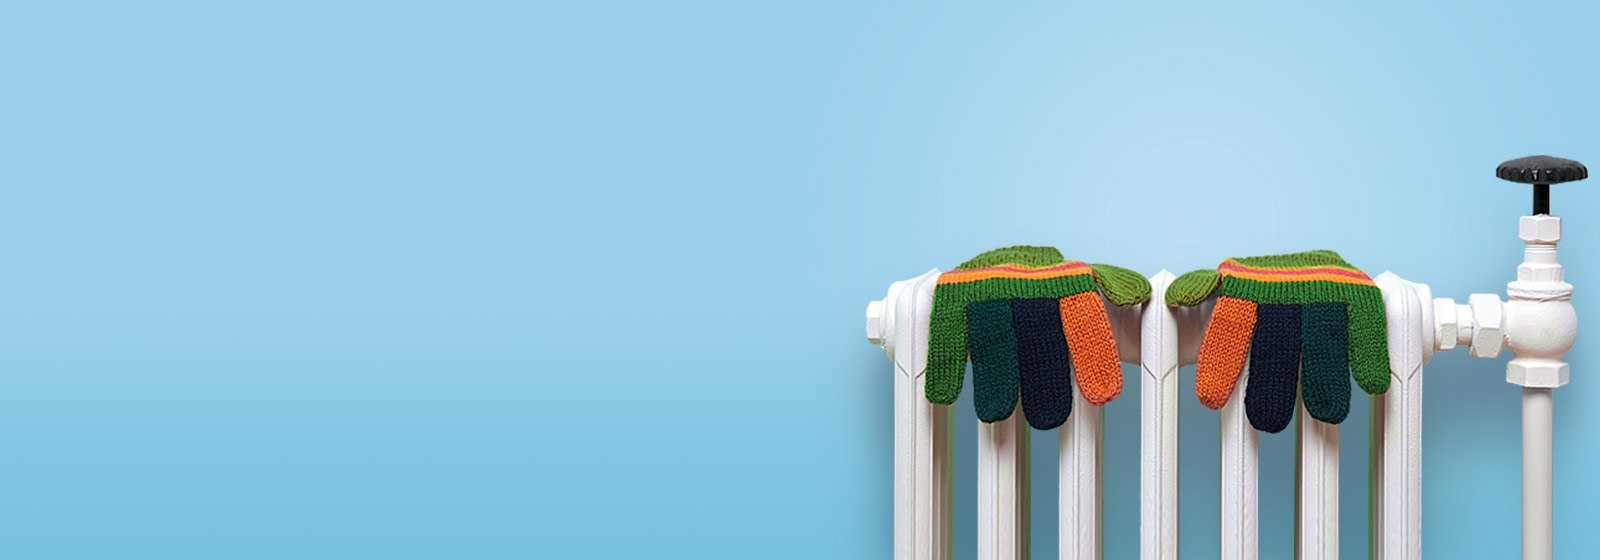 Warrm Home Discount - gloves on a radiator